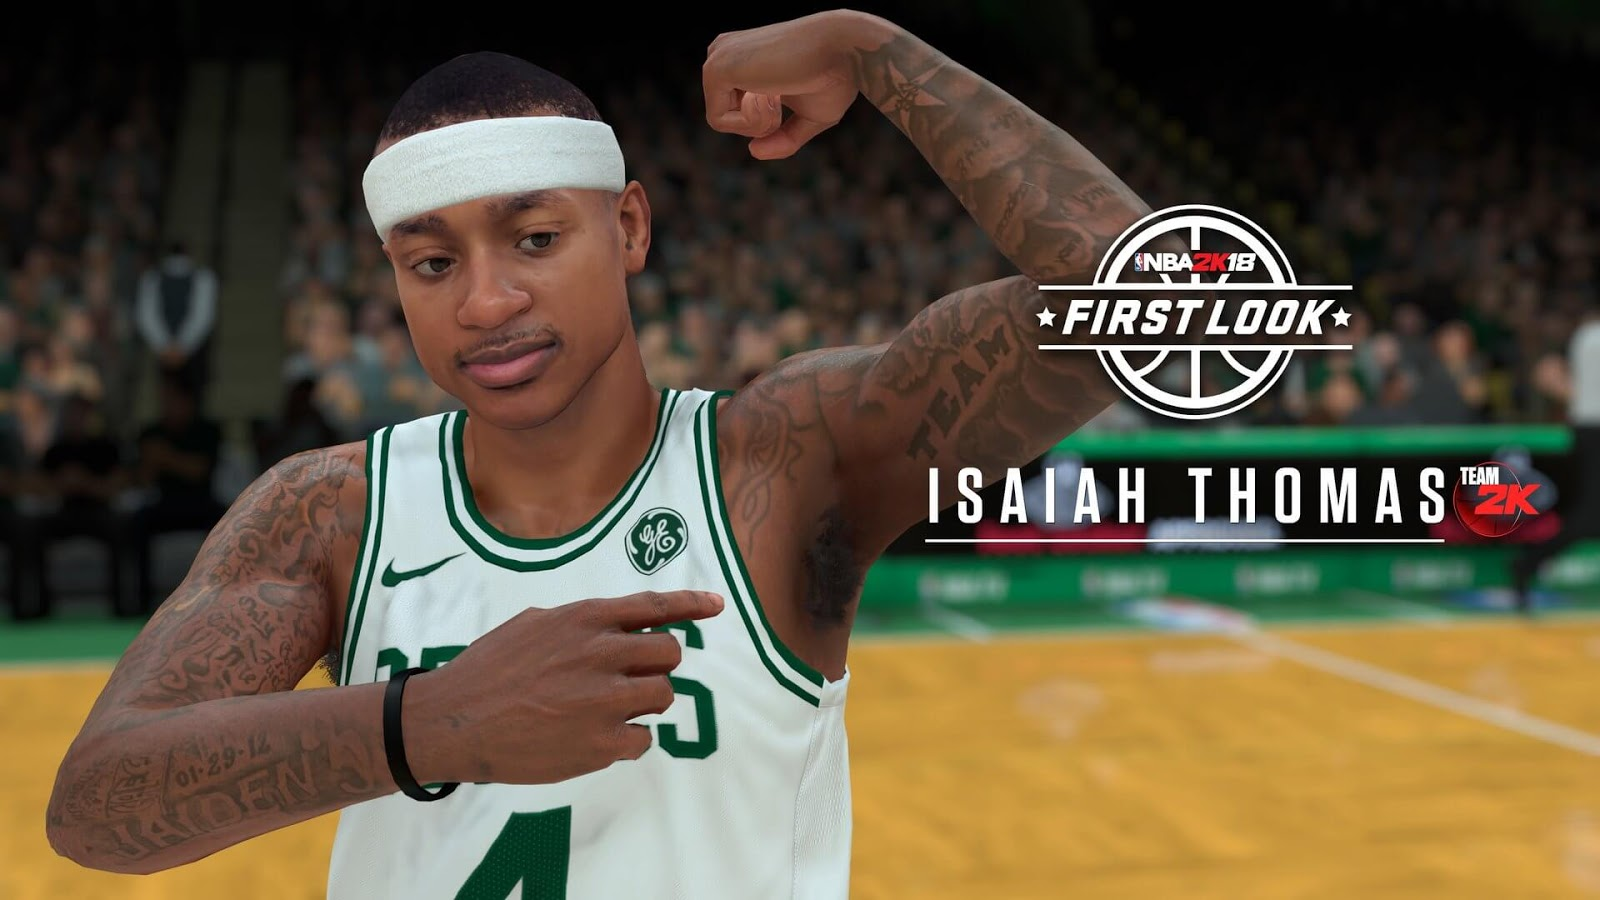 NBA 2k18 Isaiah Thomas Screenshot